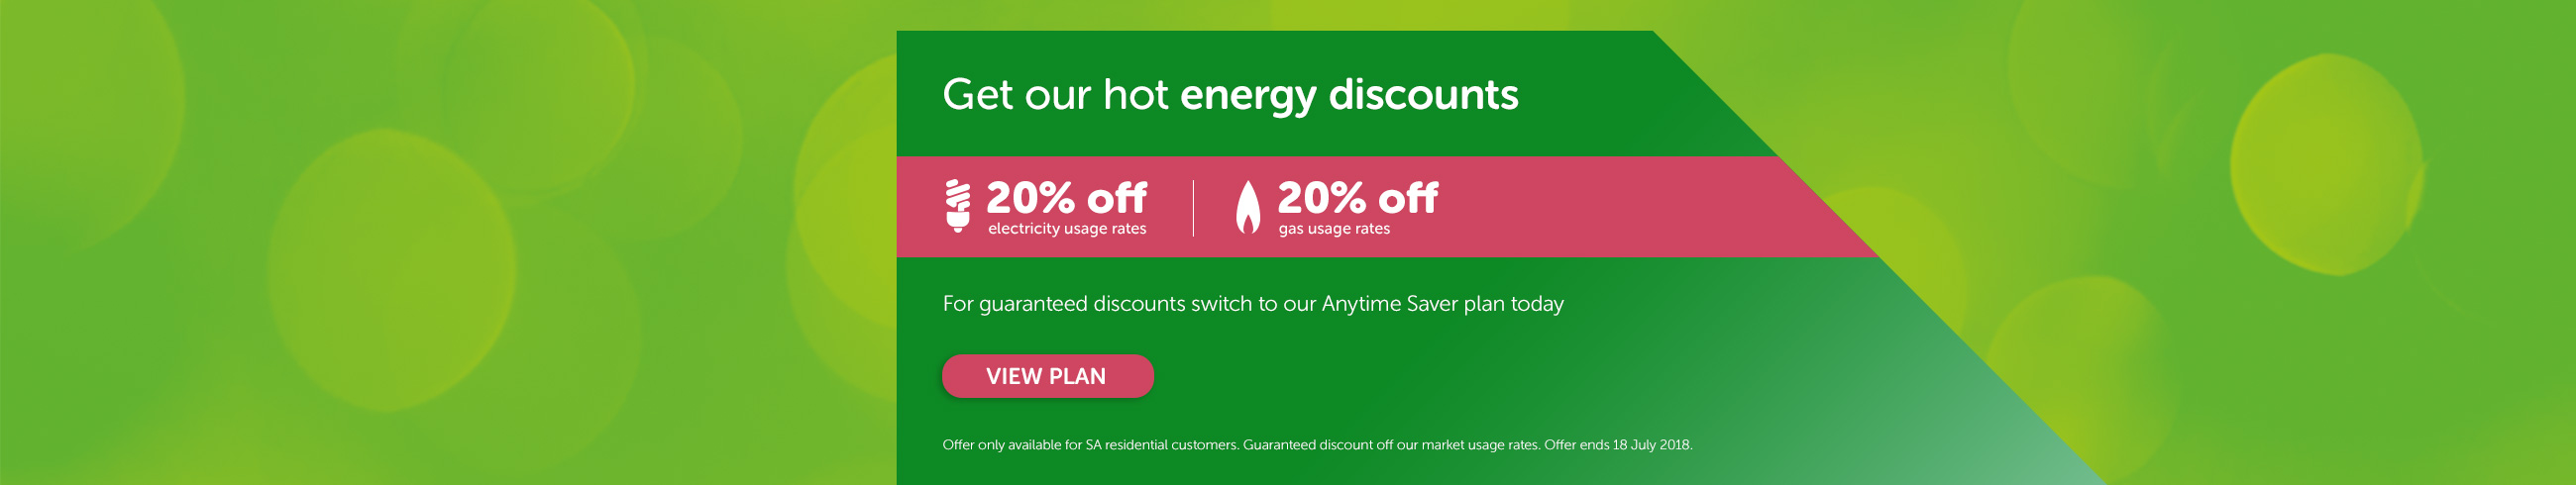 Get out hot energy discounts - For guaranteed discounts switch to our Anytime Saver plan today